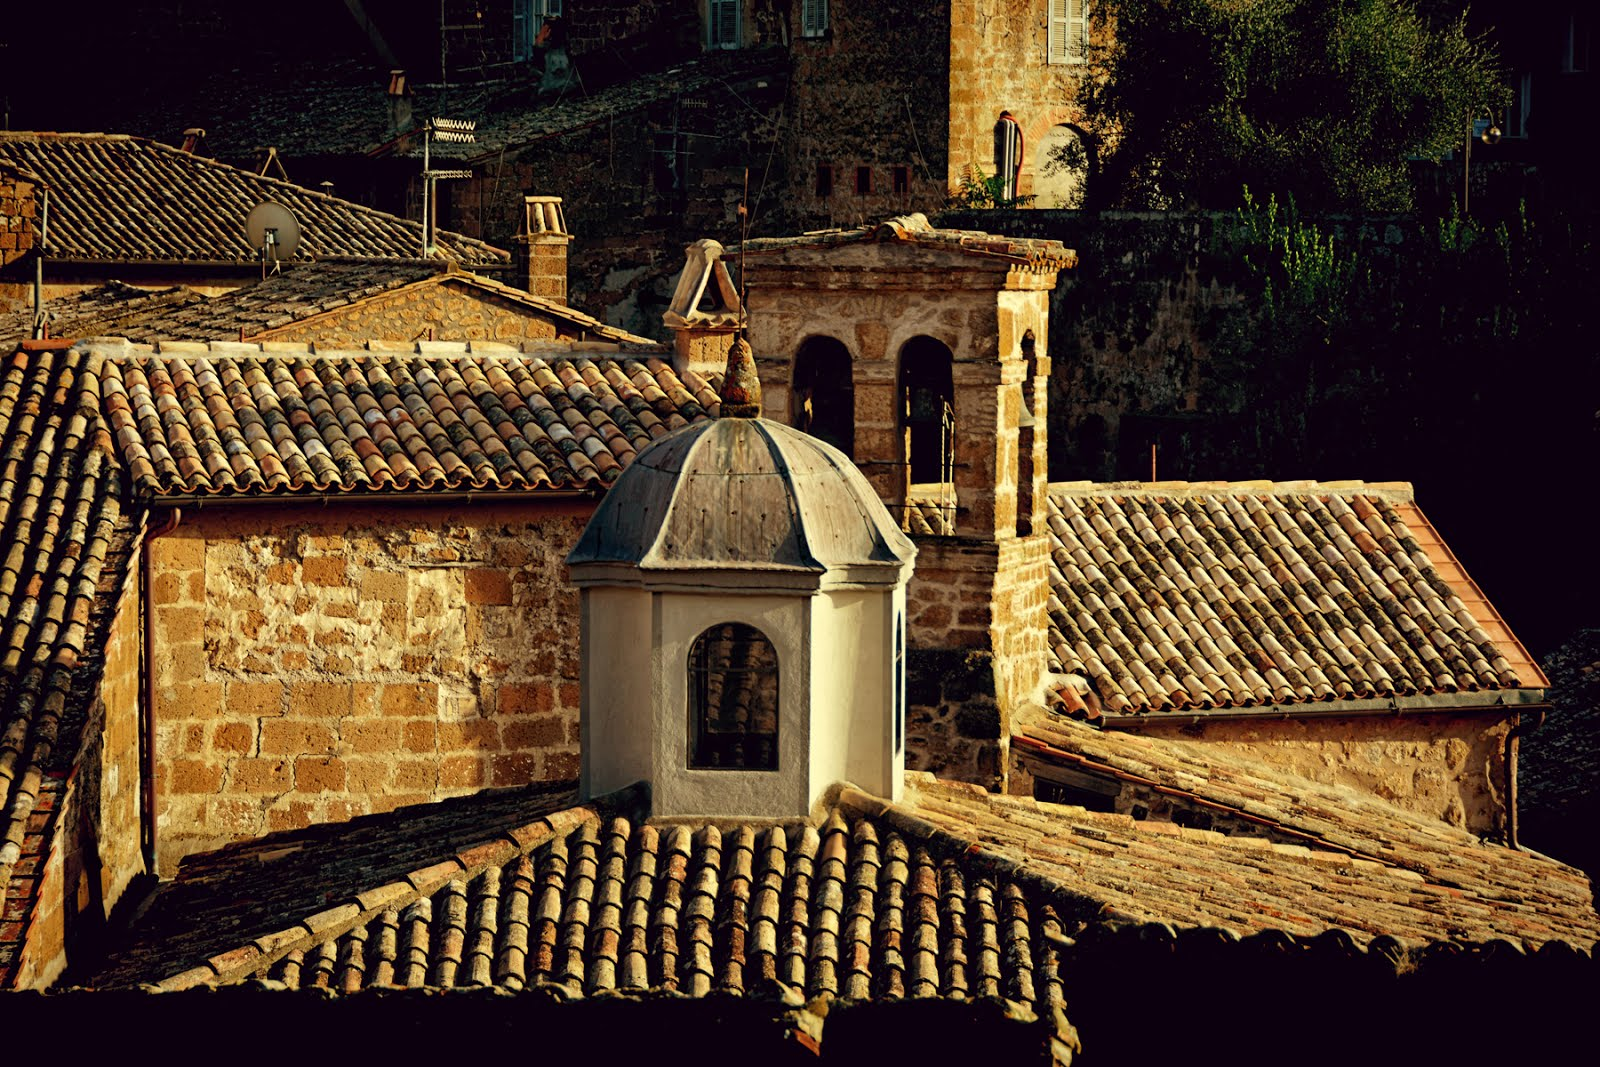 Join me for Slow Photography in Orvieto, Italy